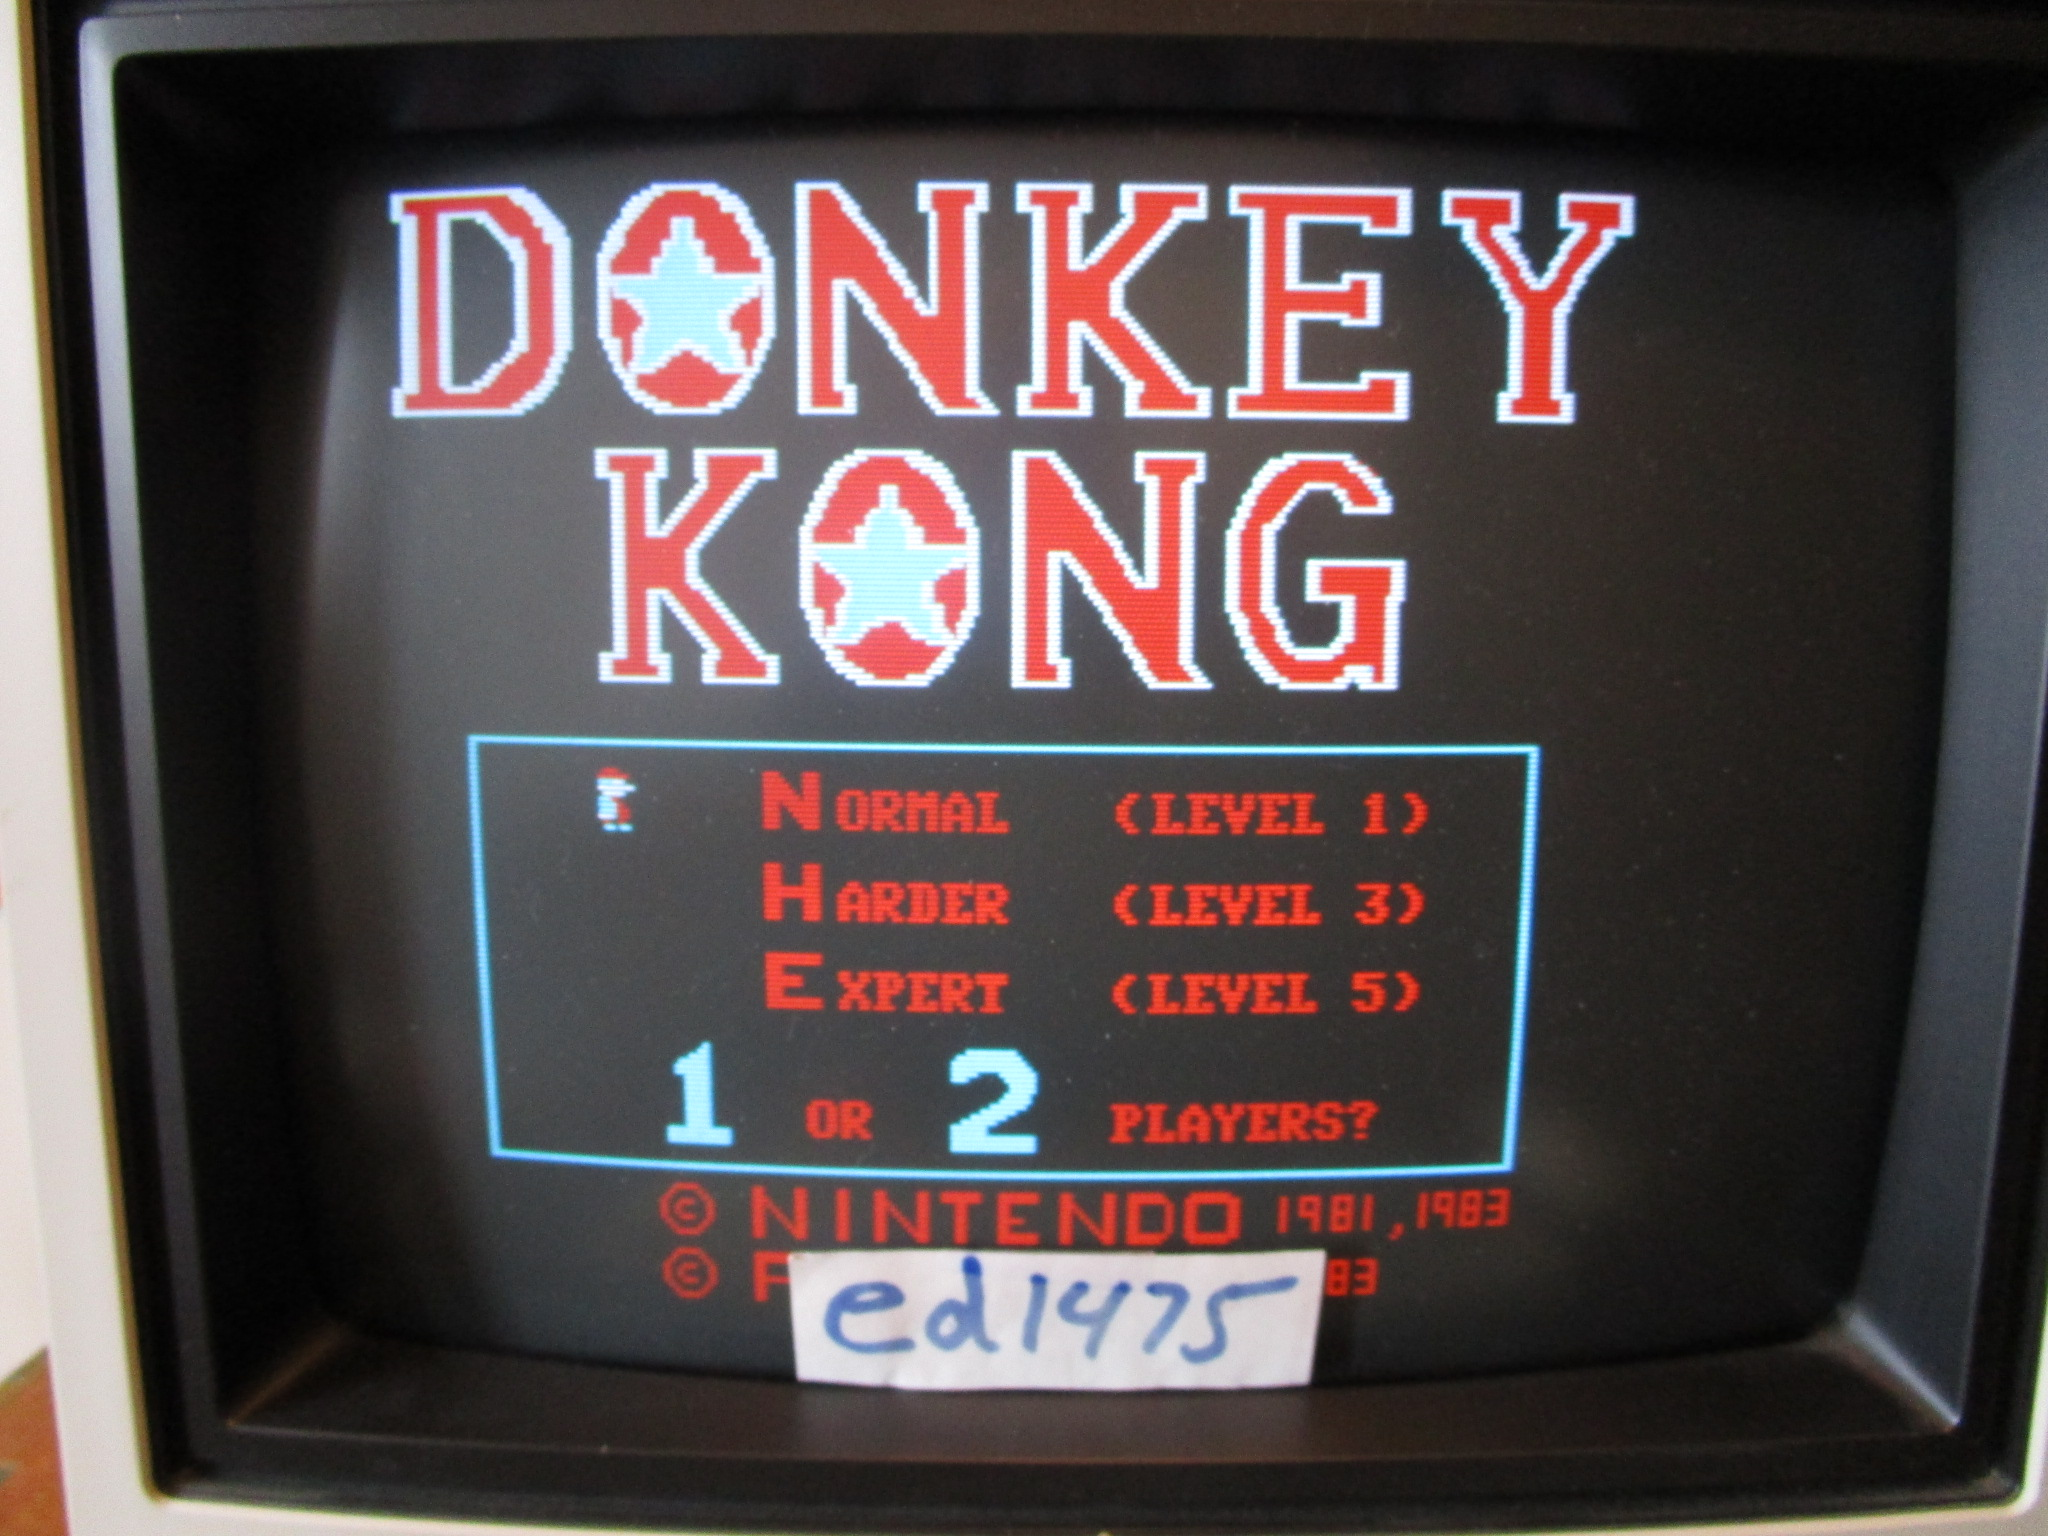 ed1475: Donkey Kong [Normal] (PC) 9,400 points on 2015-02-03 23:54:24